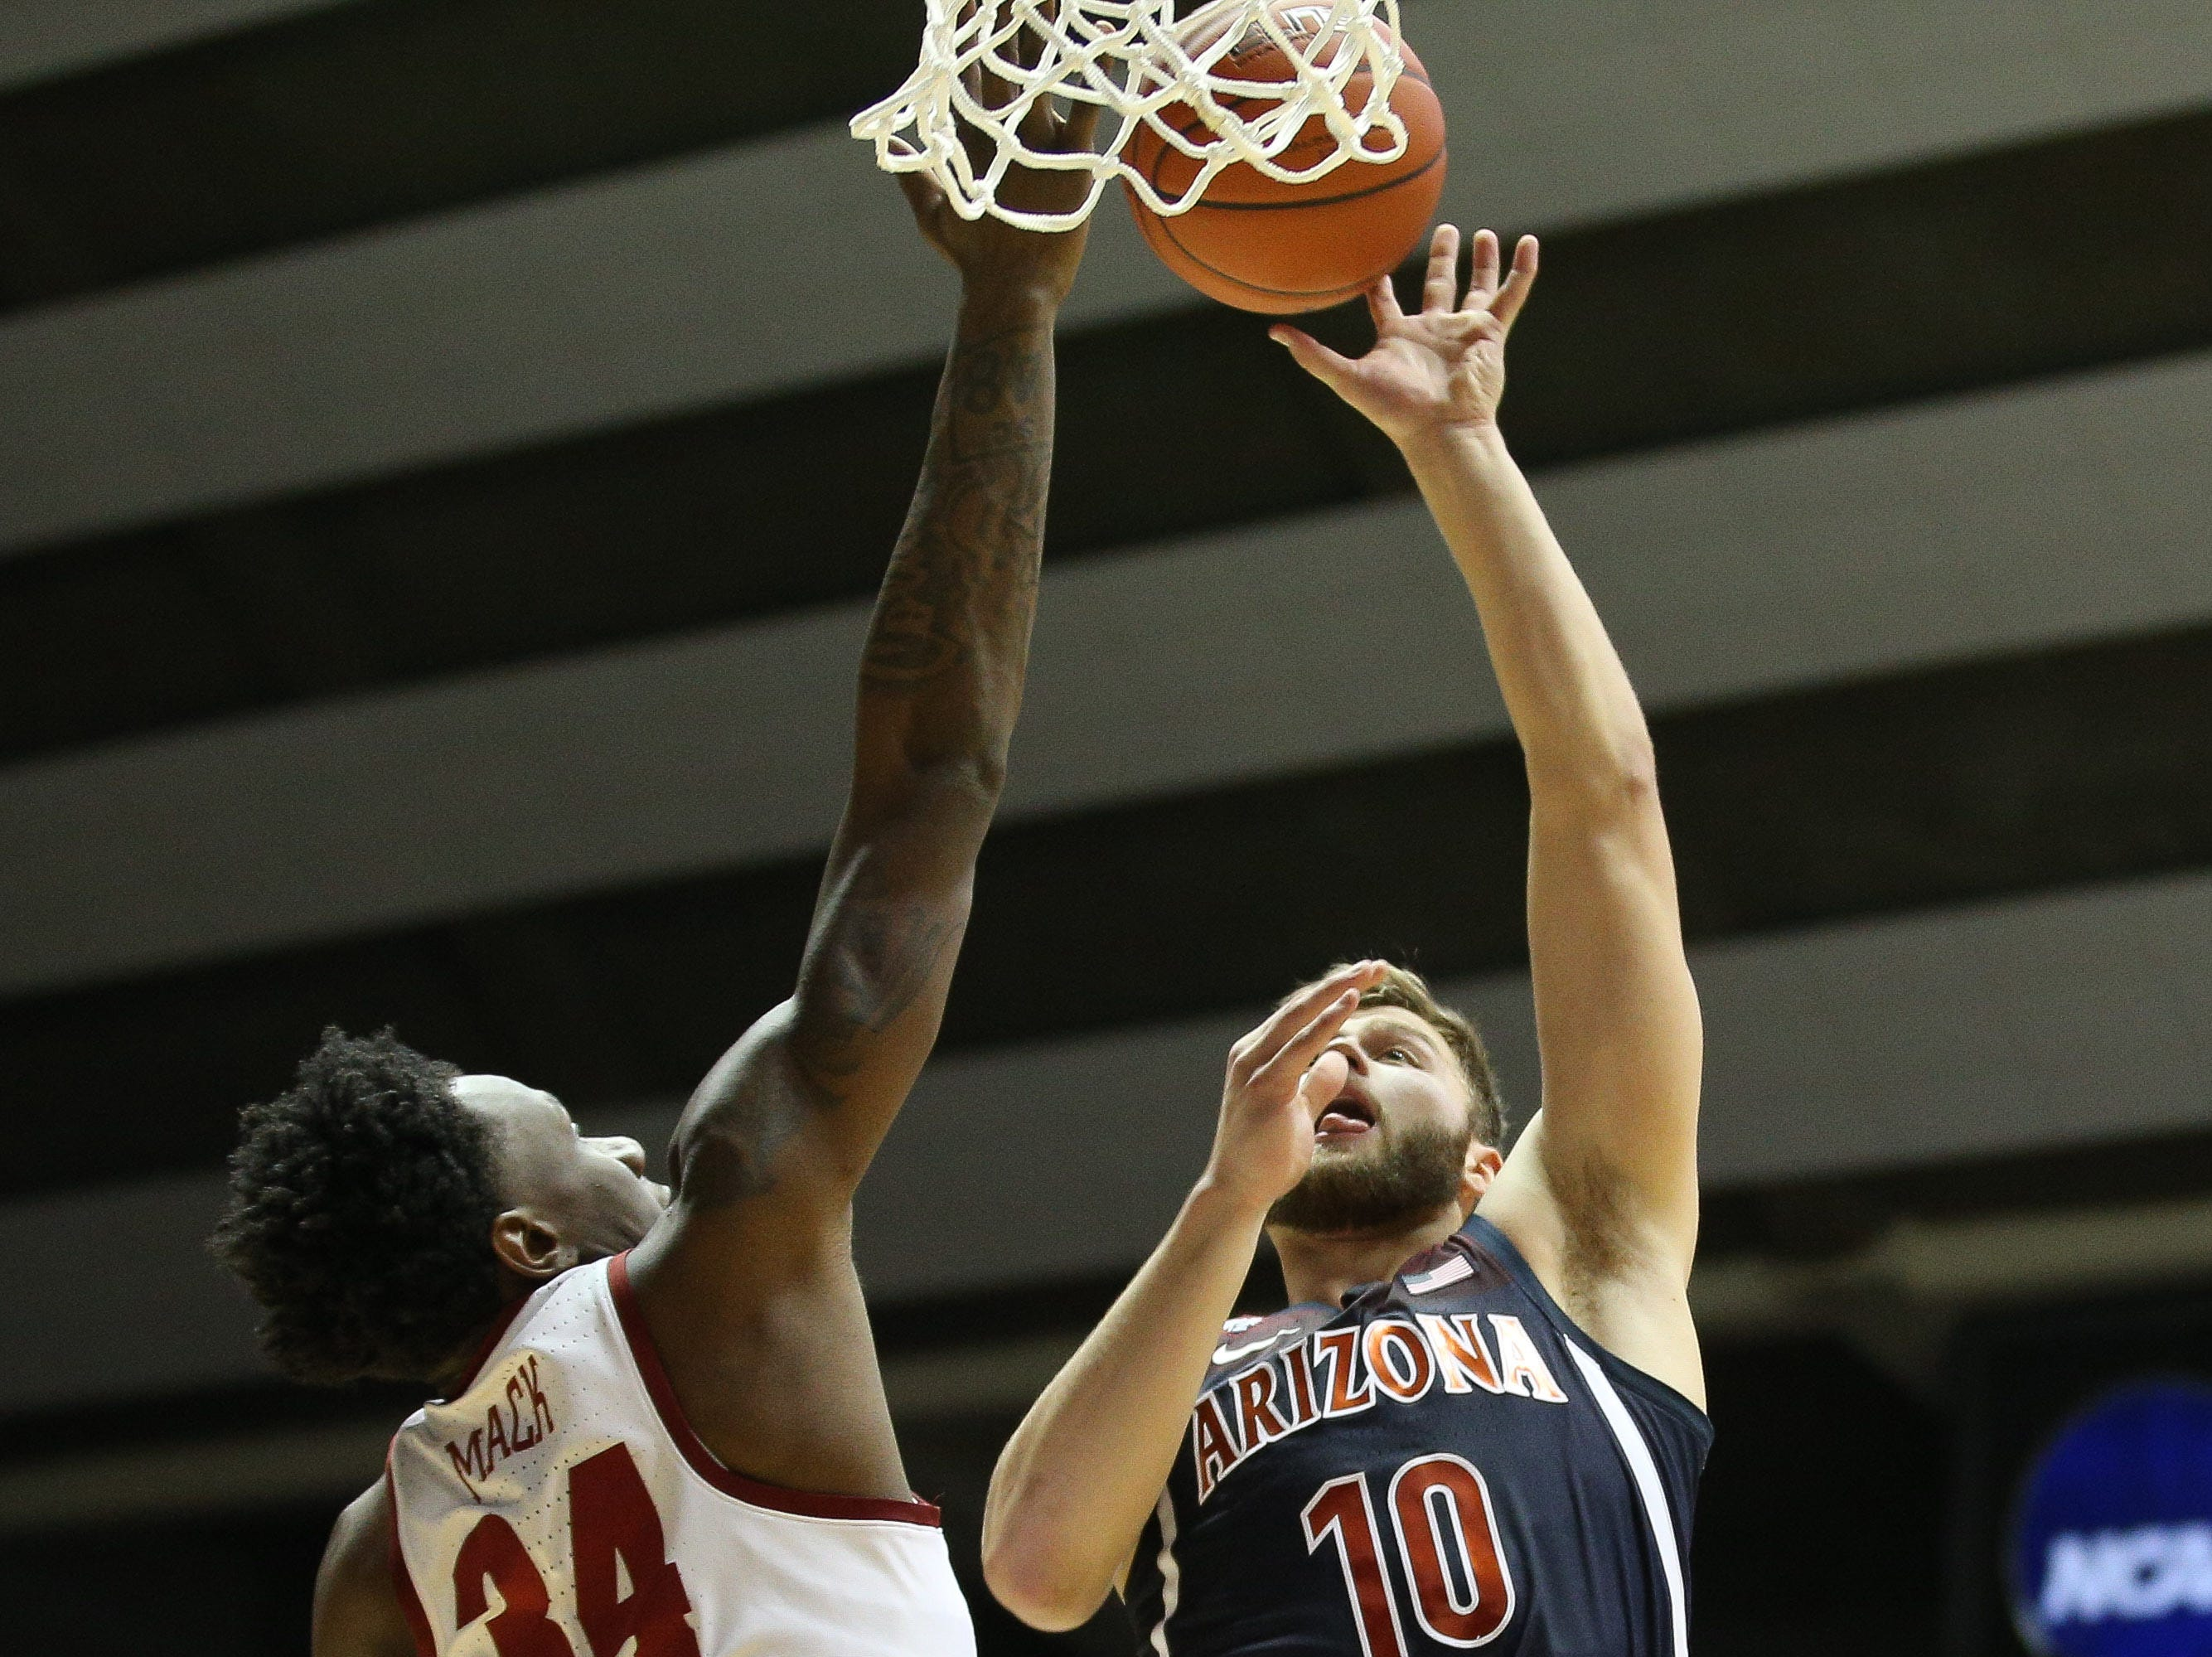 Dec 9, 2018; Tuscaloosa, AL, USA; Arizona Wildcats forward Ryan Luther (10) shoots over Alabama Crimson Tide guard Tevin Mack (34) during the first half at Coleman Coliseum. Mandatory Credit: Marvin Gentry-USA TODAY Sports